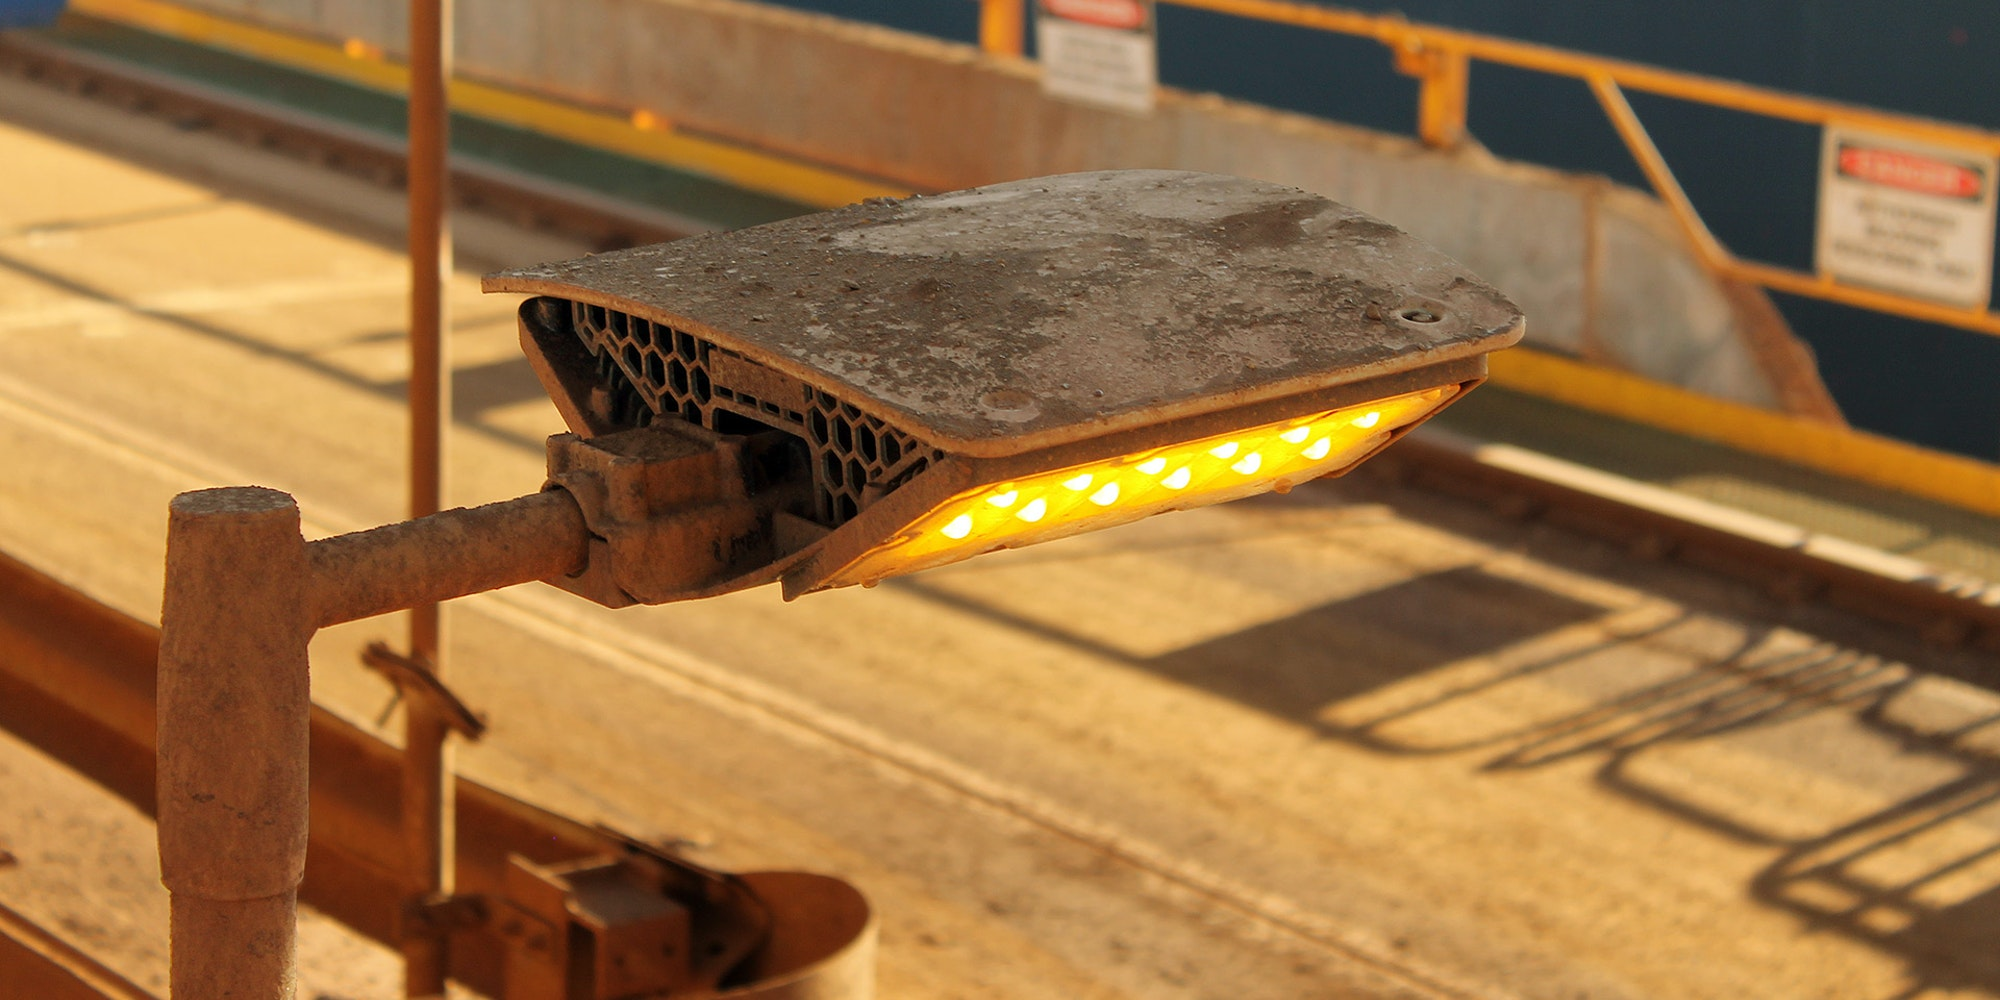 DLK LED Conveyor / Area Light in application, installed on a conveyor on an iron ore mine in bulk port, close up photo